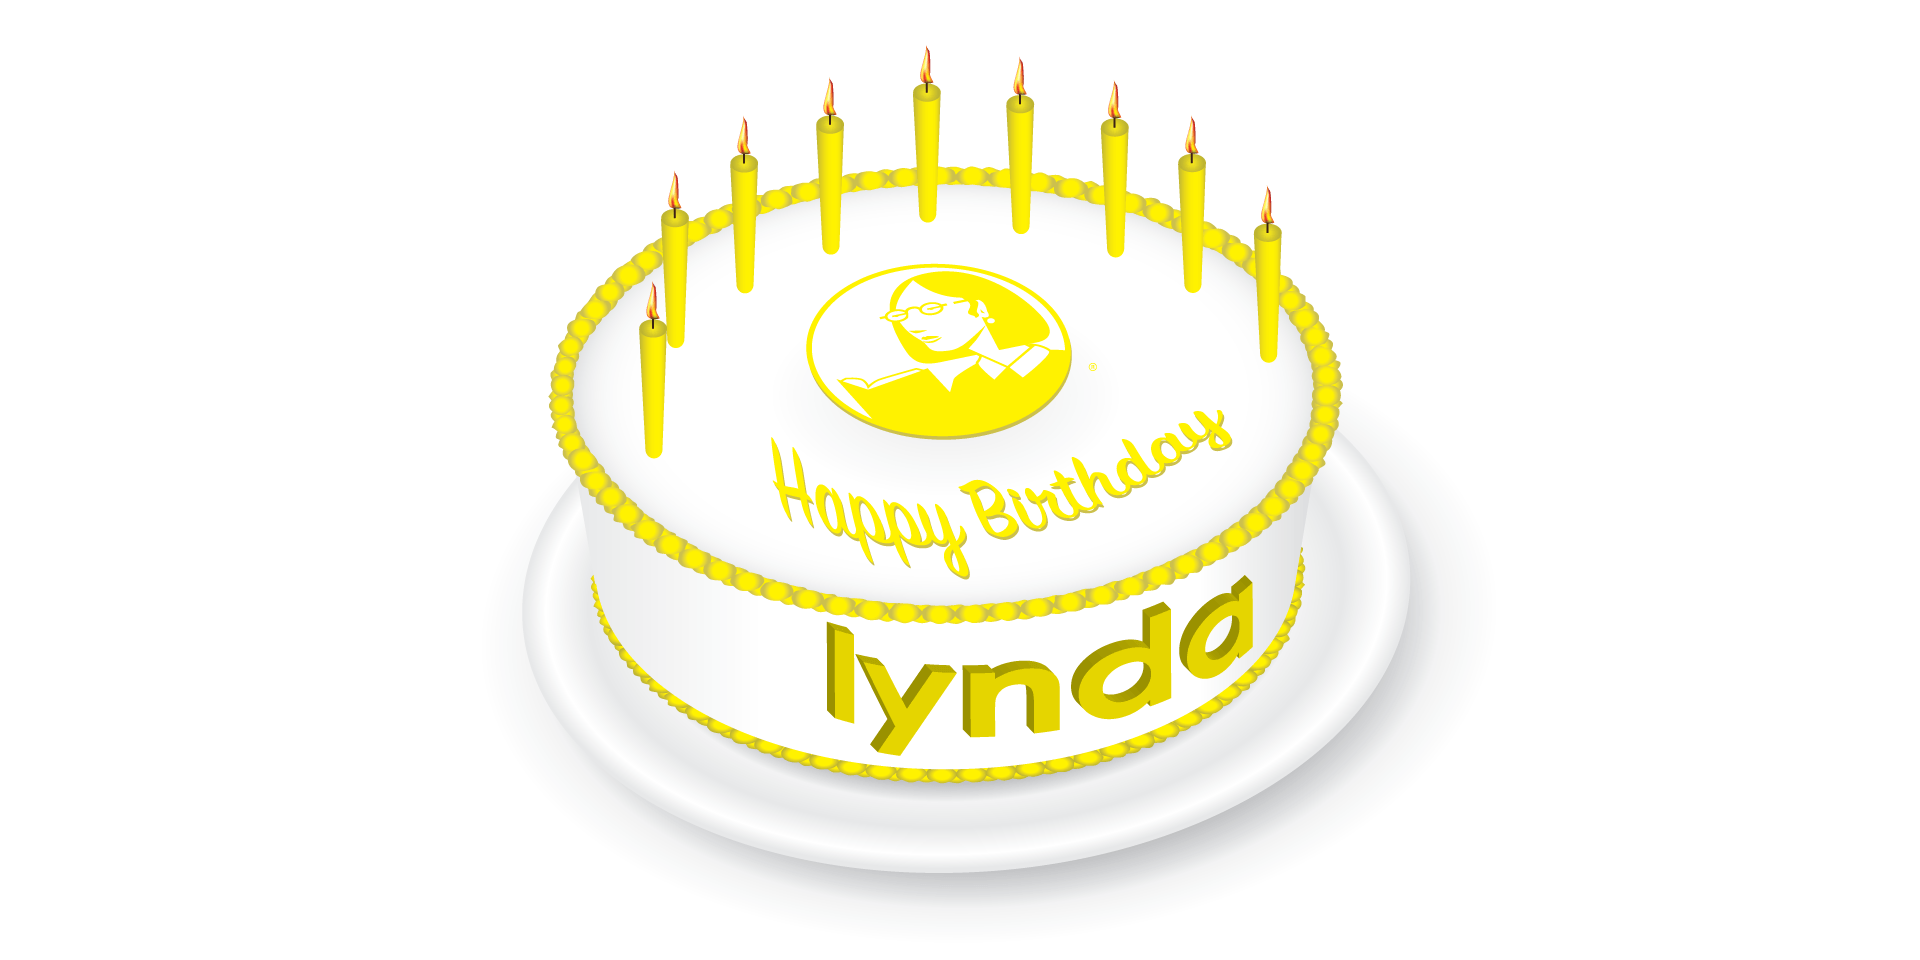 Happy Birthday Lynda Weinman